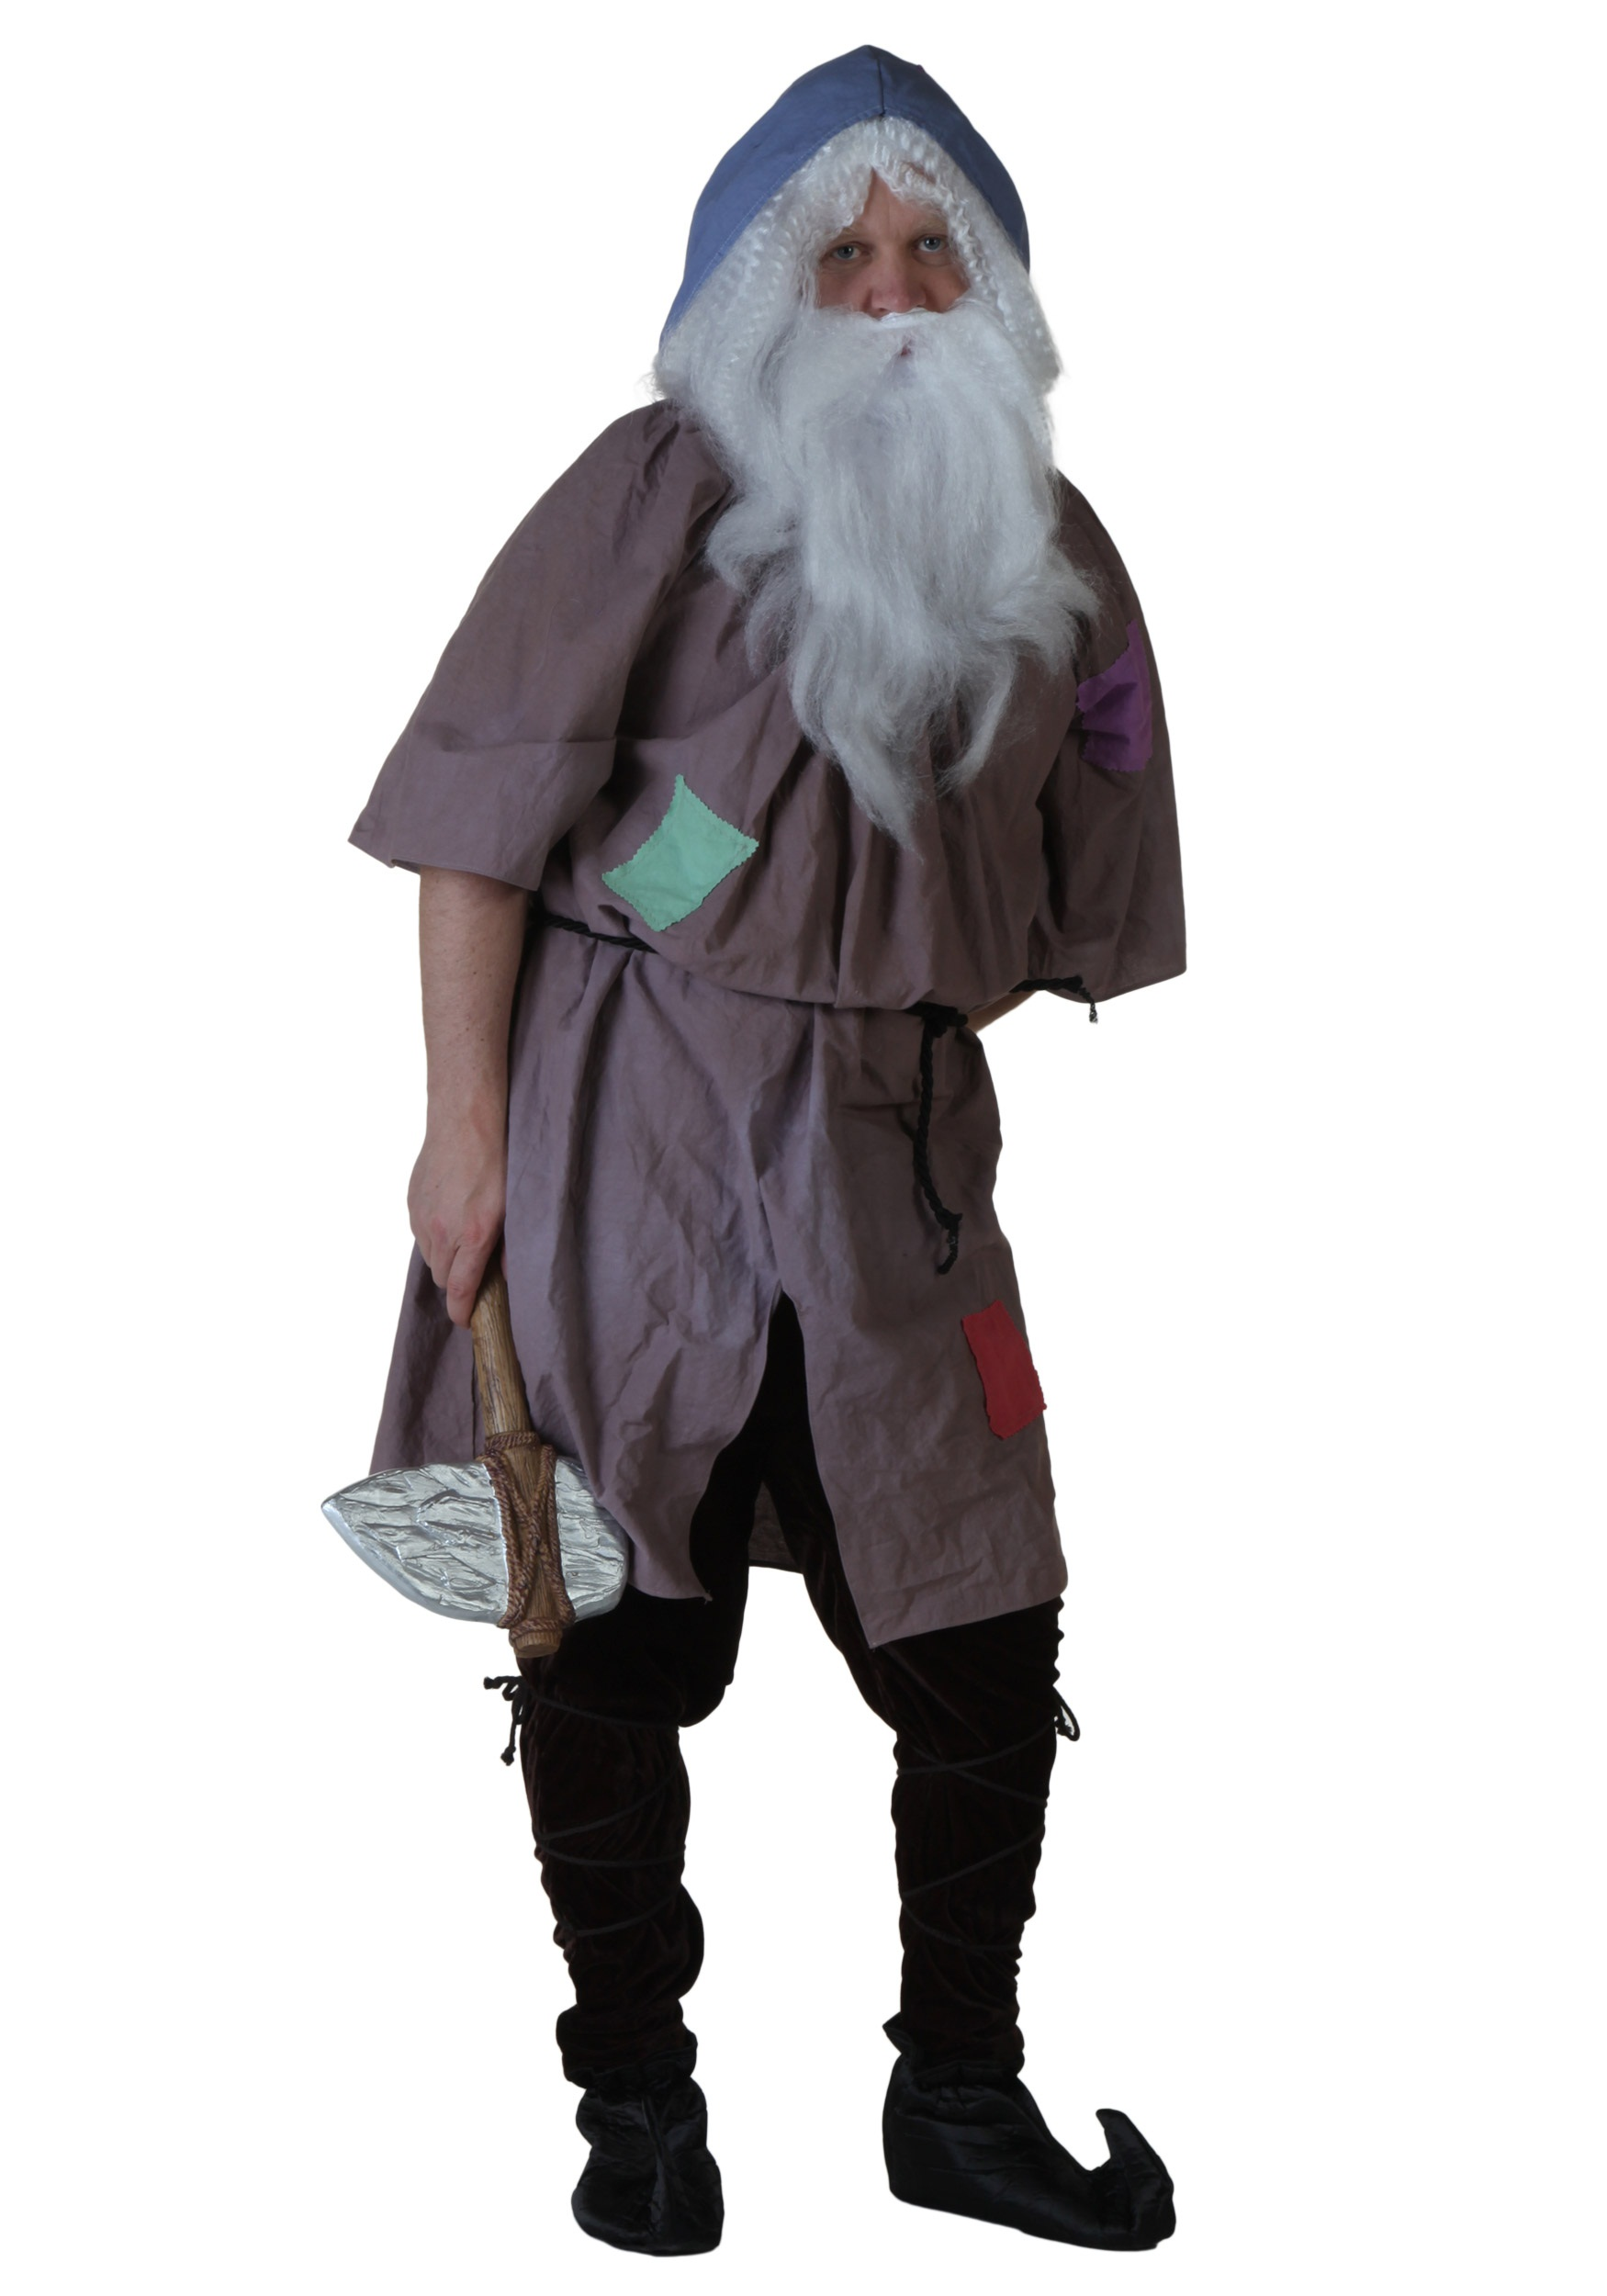 8d67658f58b Results 61 - 72 of 72 for Disney Costumes